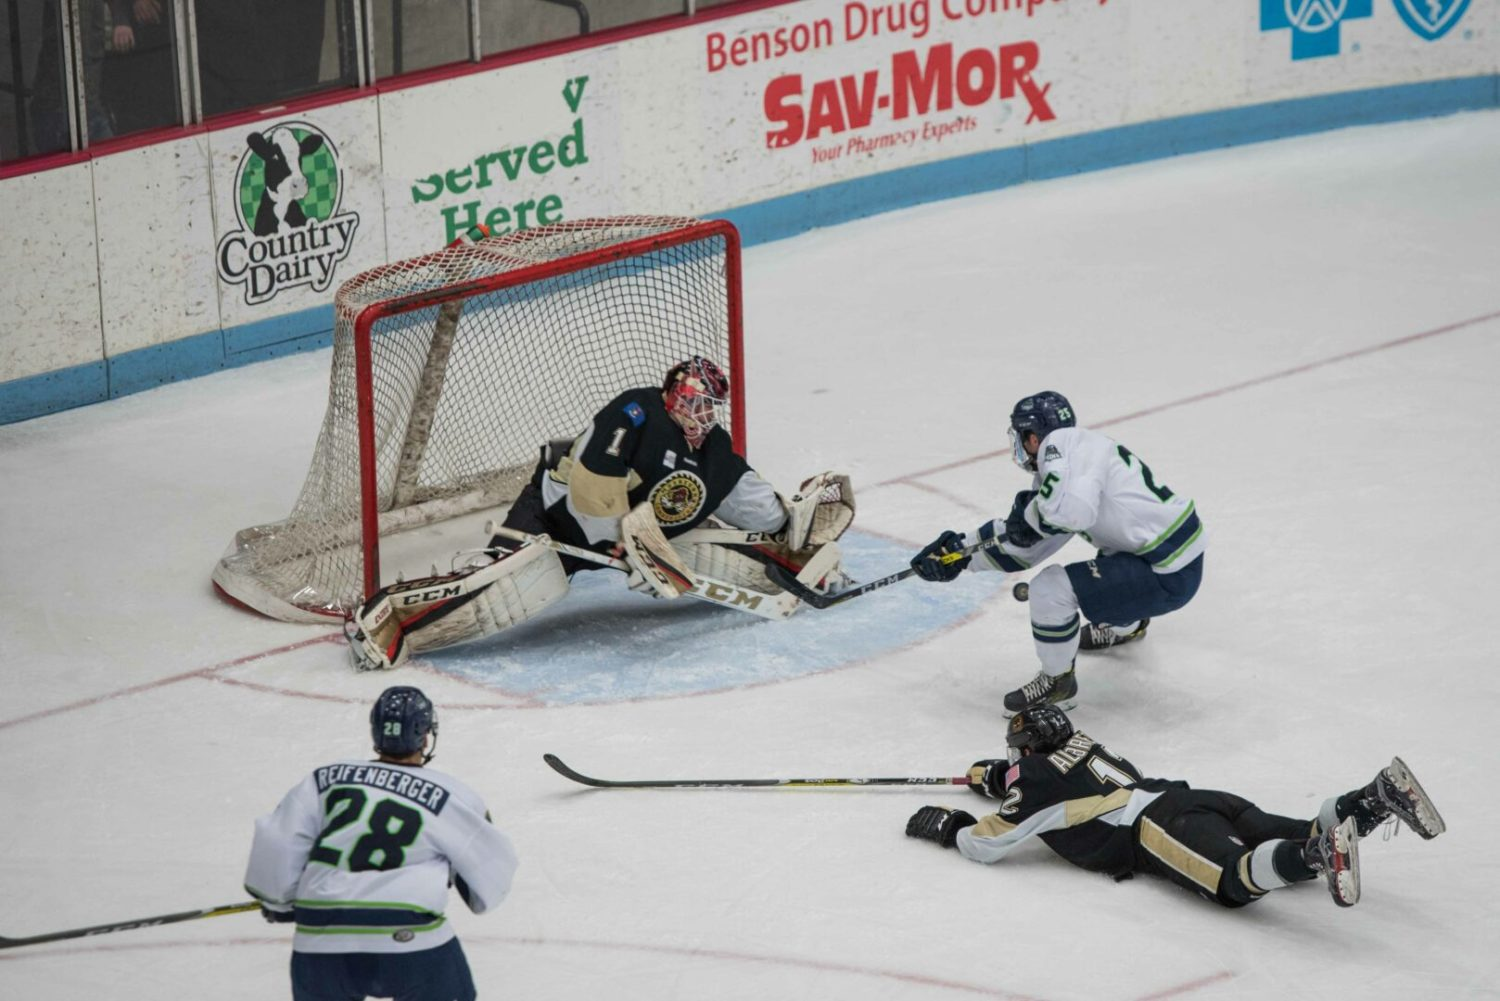 Lumberjacks rally again, win another nail-biter over Bloomington, 3-2 in OT shootout